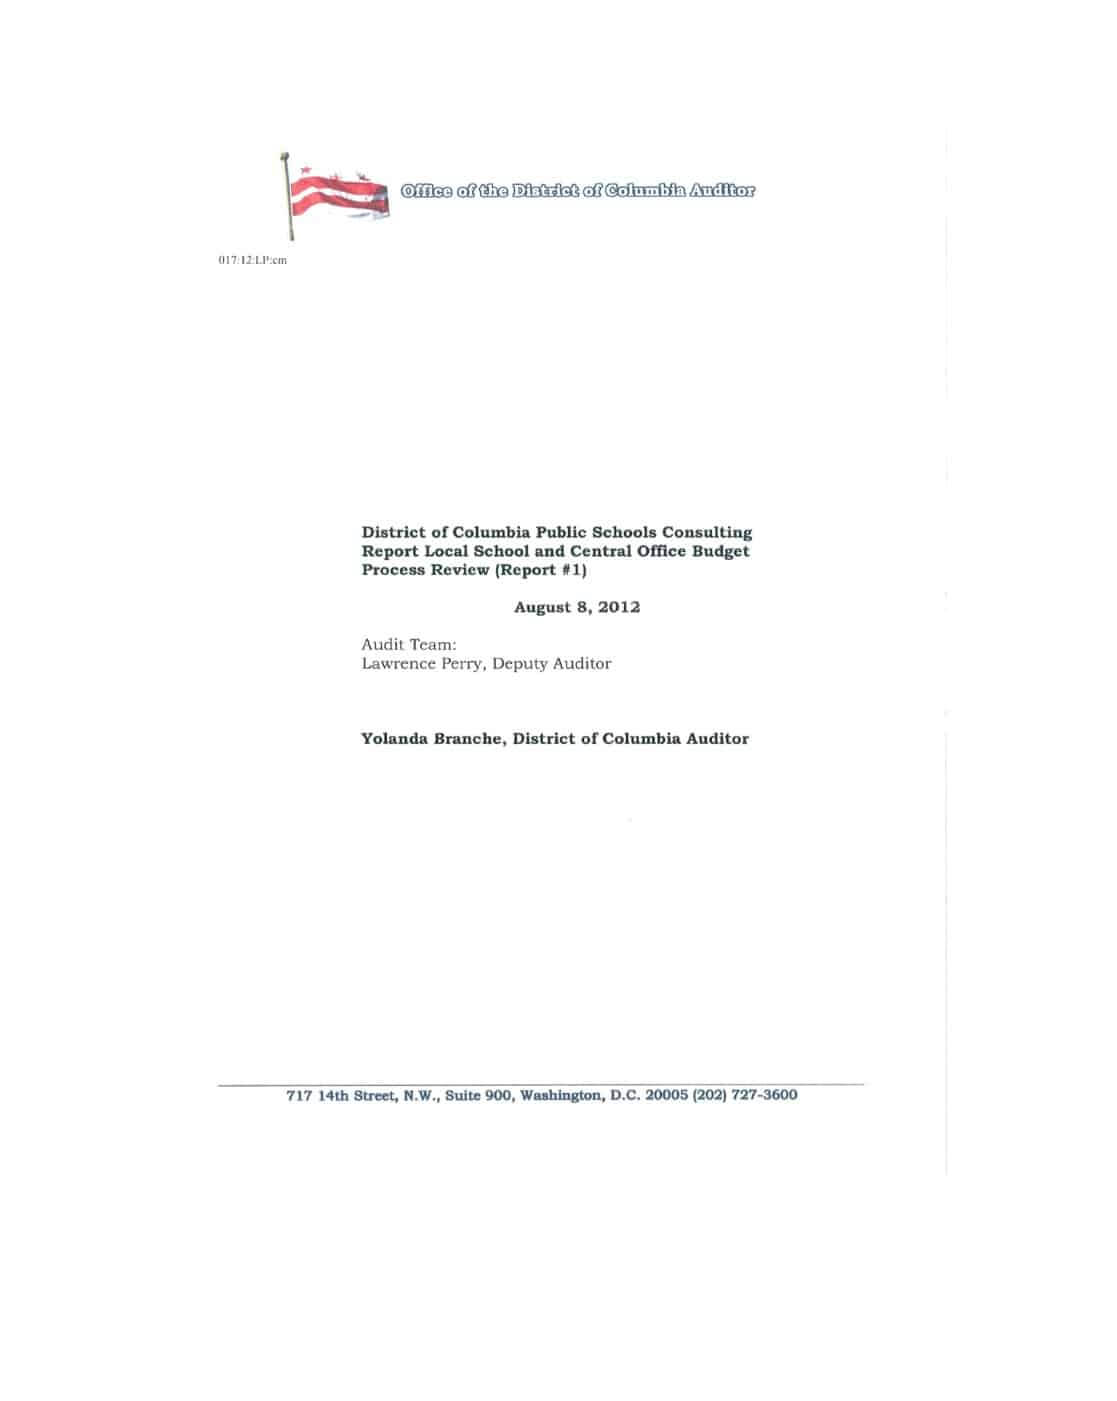 50 Best Consulting Report Templates & Examples ᐅ Template Lab Regarding Consultant Report Template